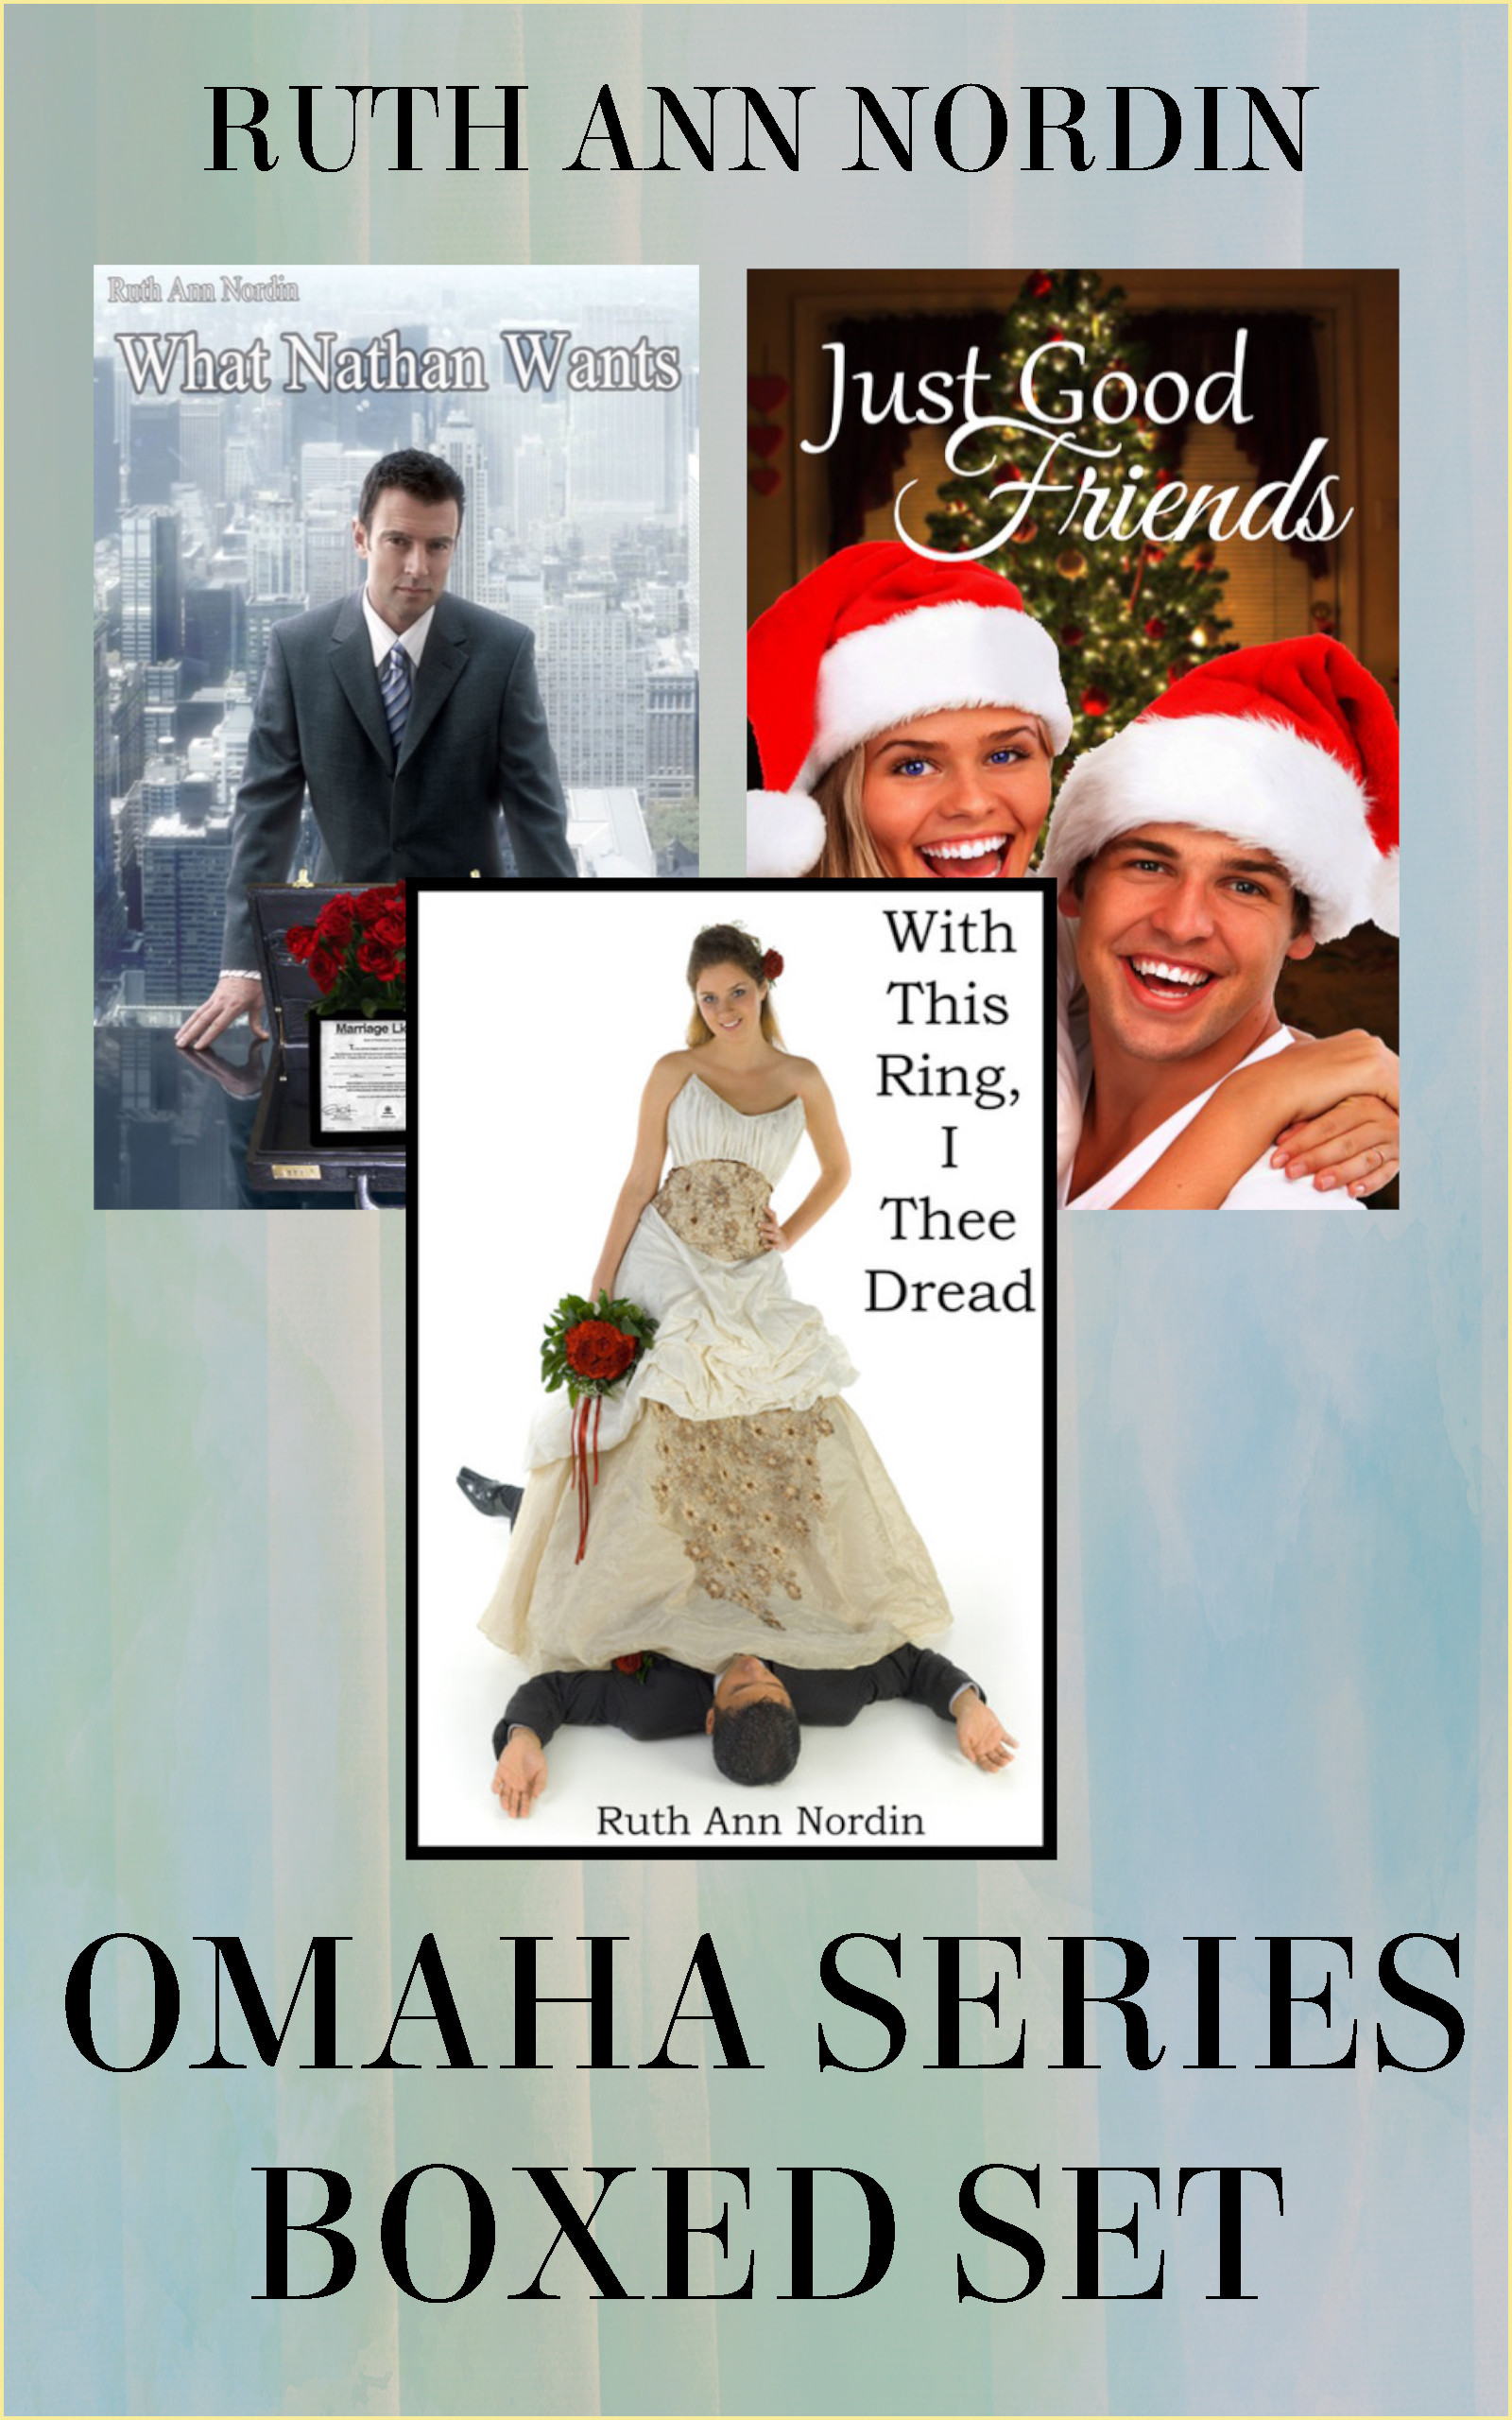 Omaha Series Boxed Set flat ebook cover